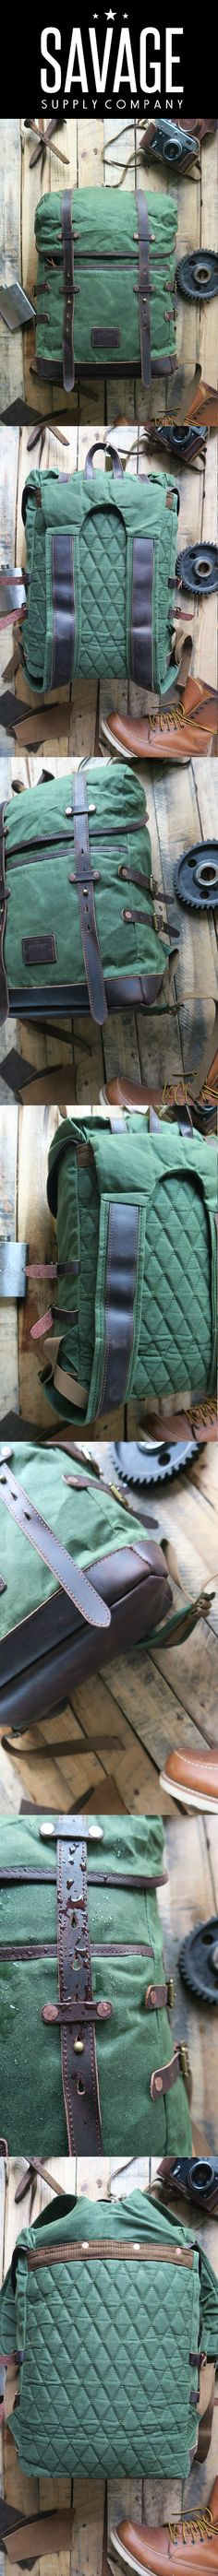 Waxed canvas hiking adventure backpack by Savage Supply Co.